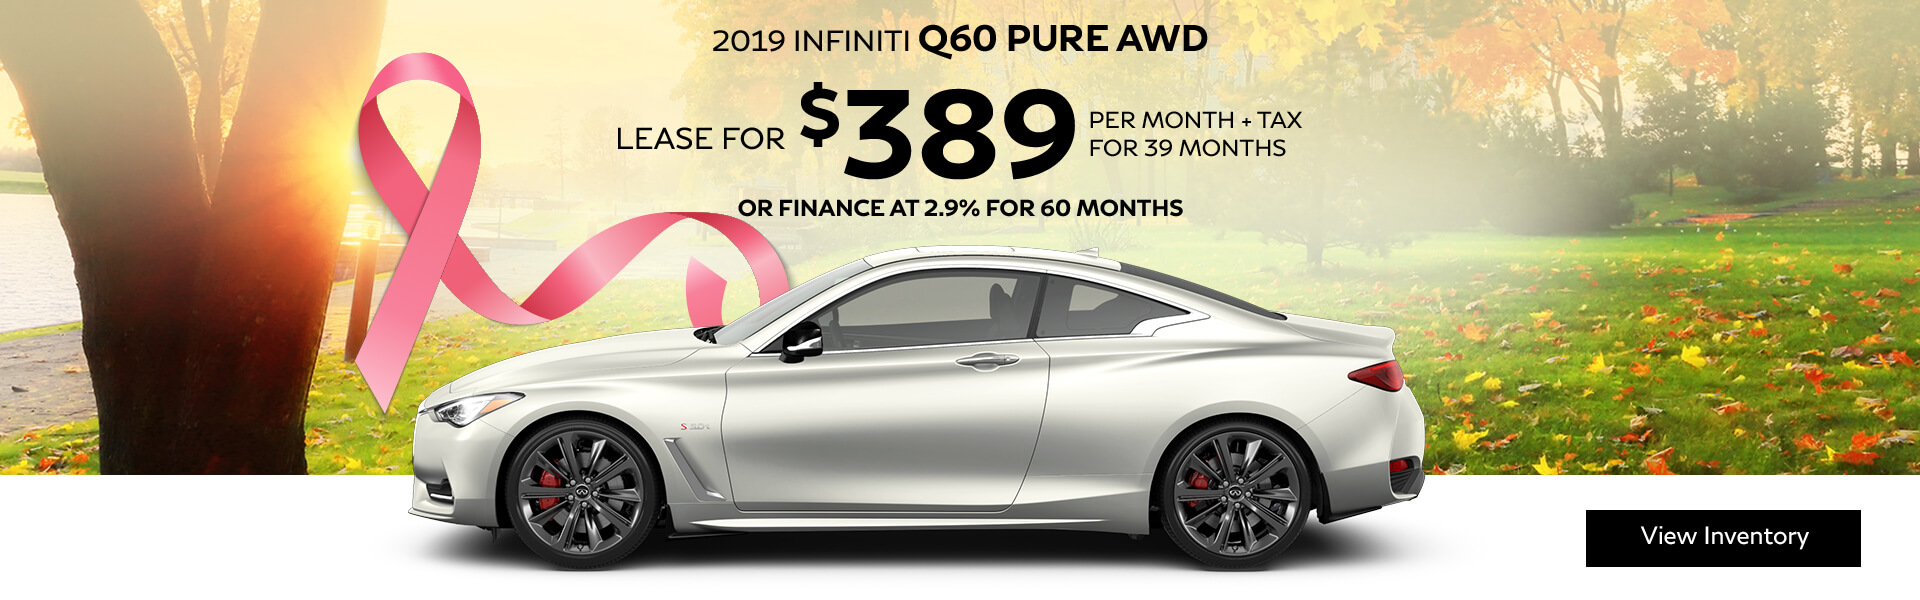 Q60 PURE - Lease for $389